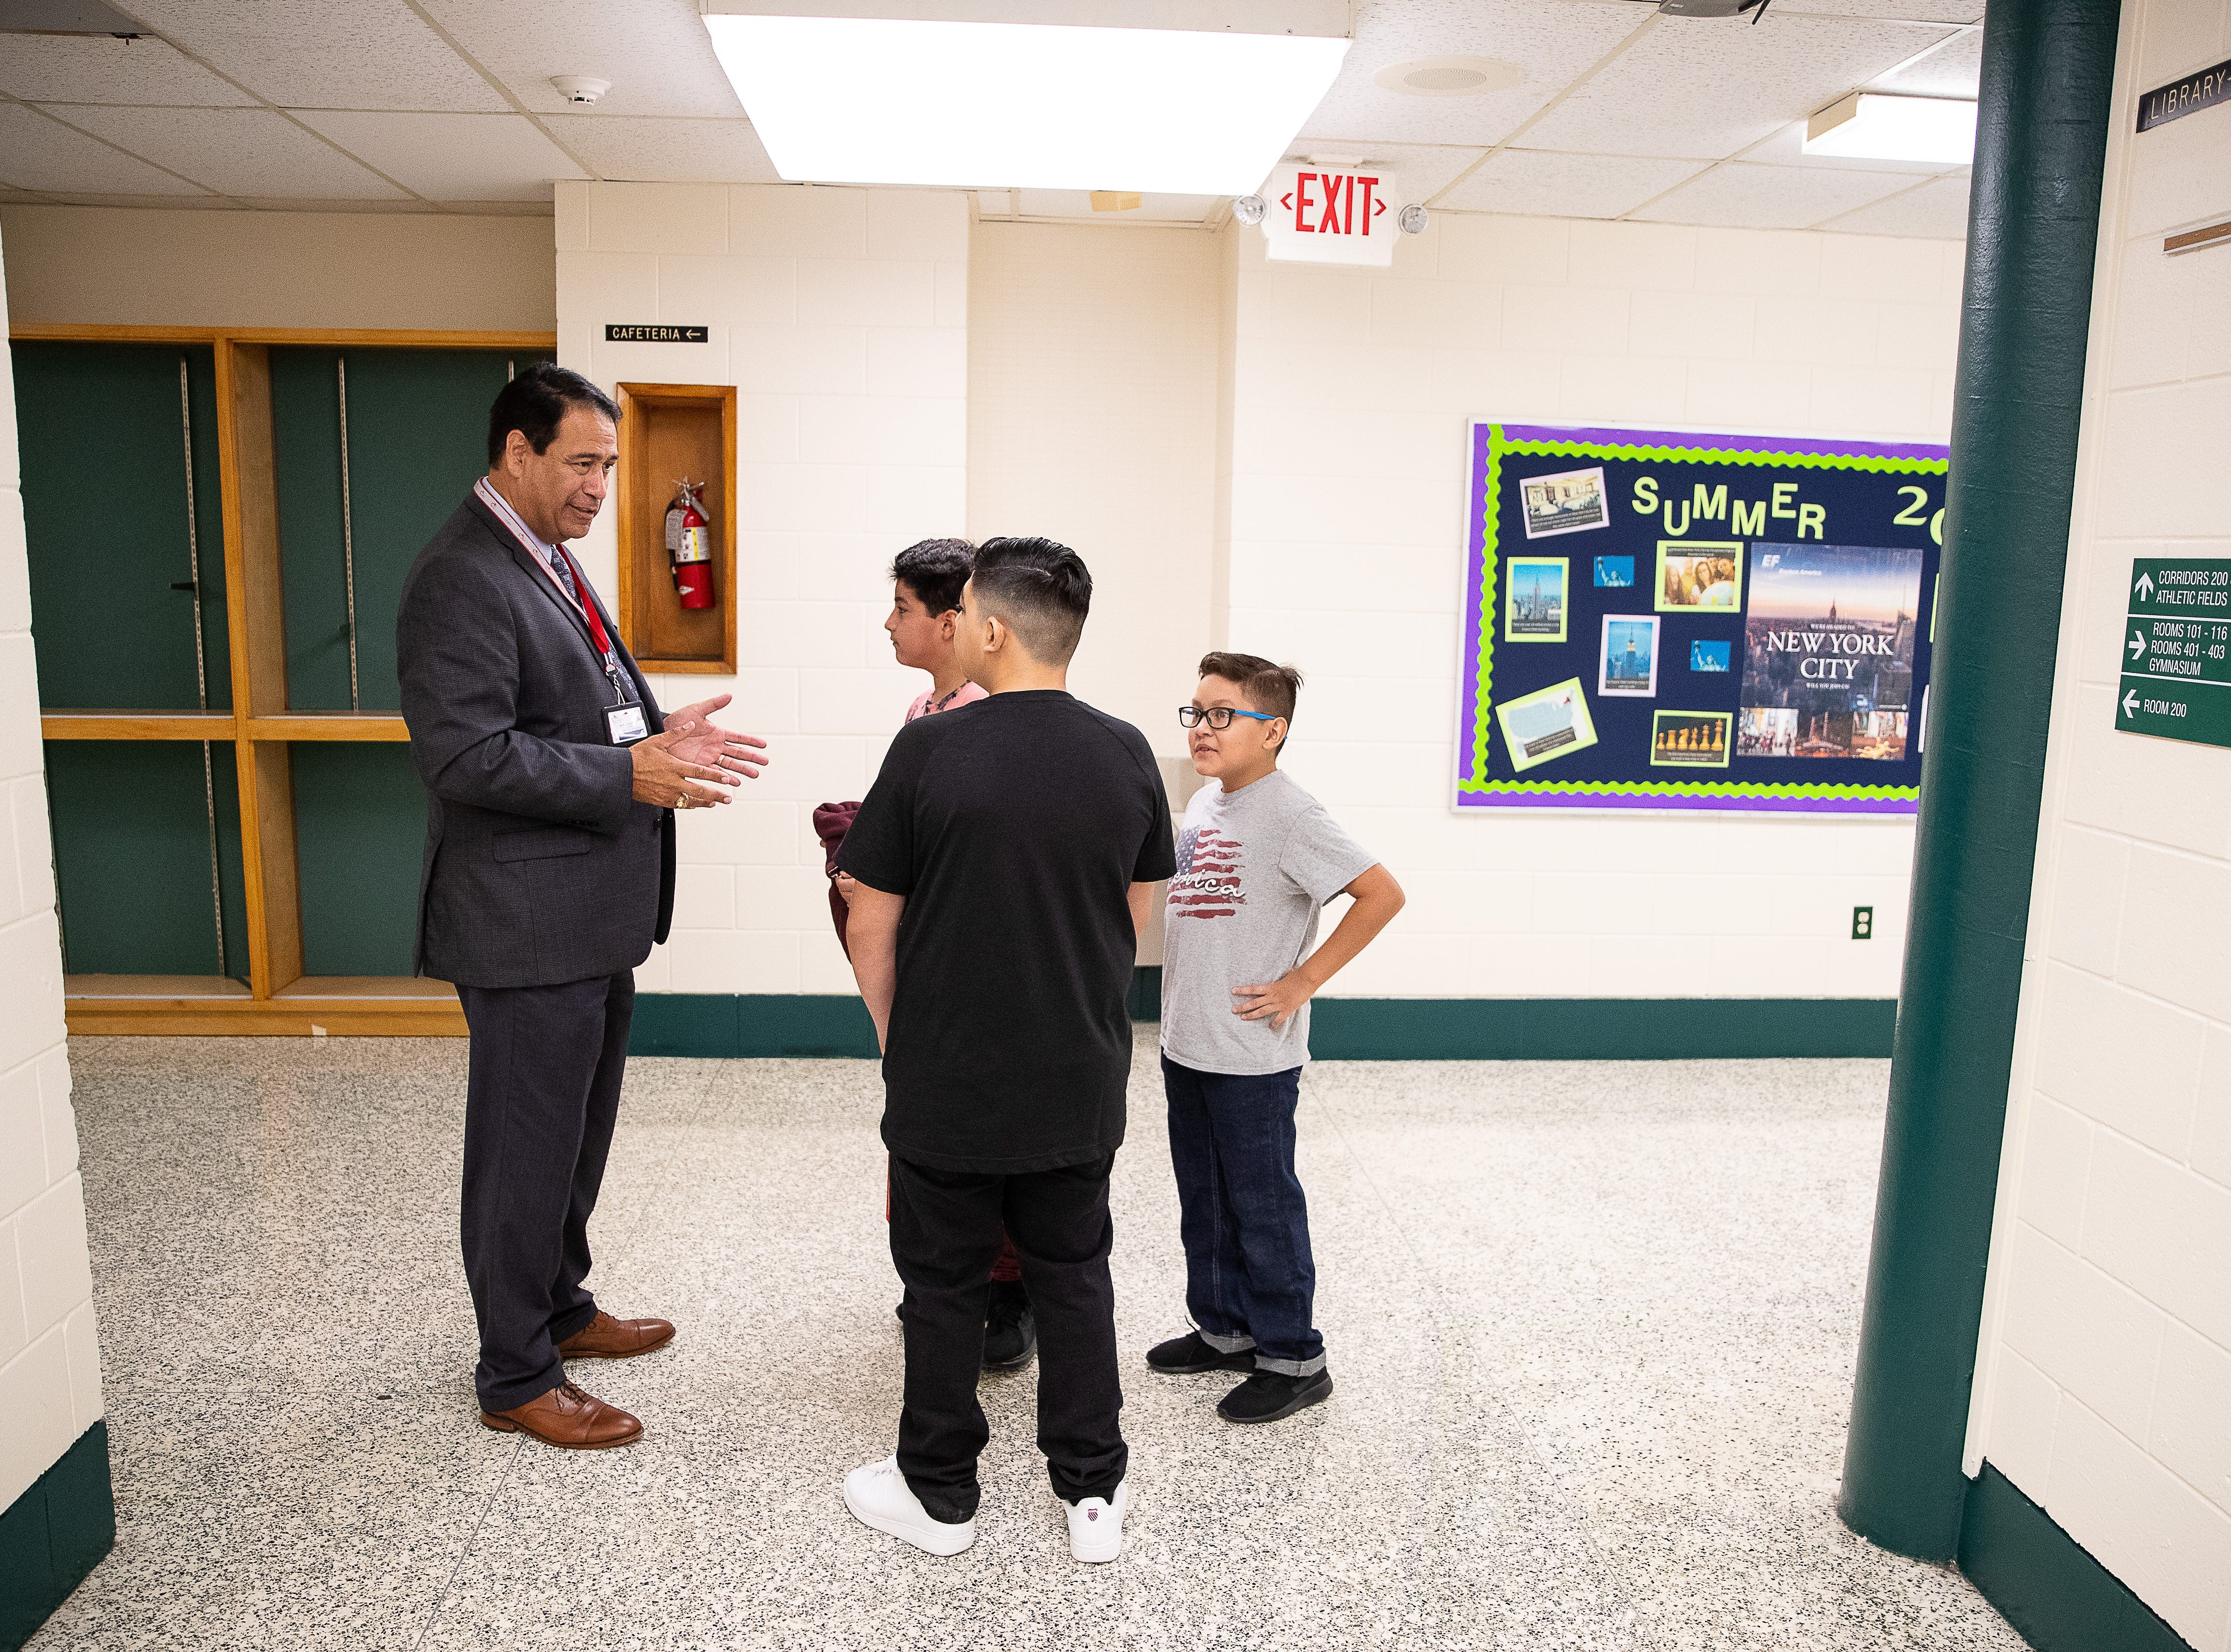 Corpus Christi Independent School District Superintendent Roland Hernandez talks to students in the hallway before the start of the school day Haas Middle School on the first day of school, Monday, Aug. 27, 2018.